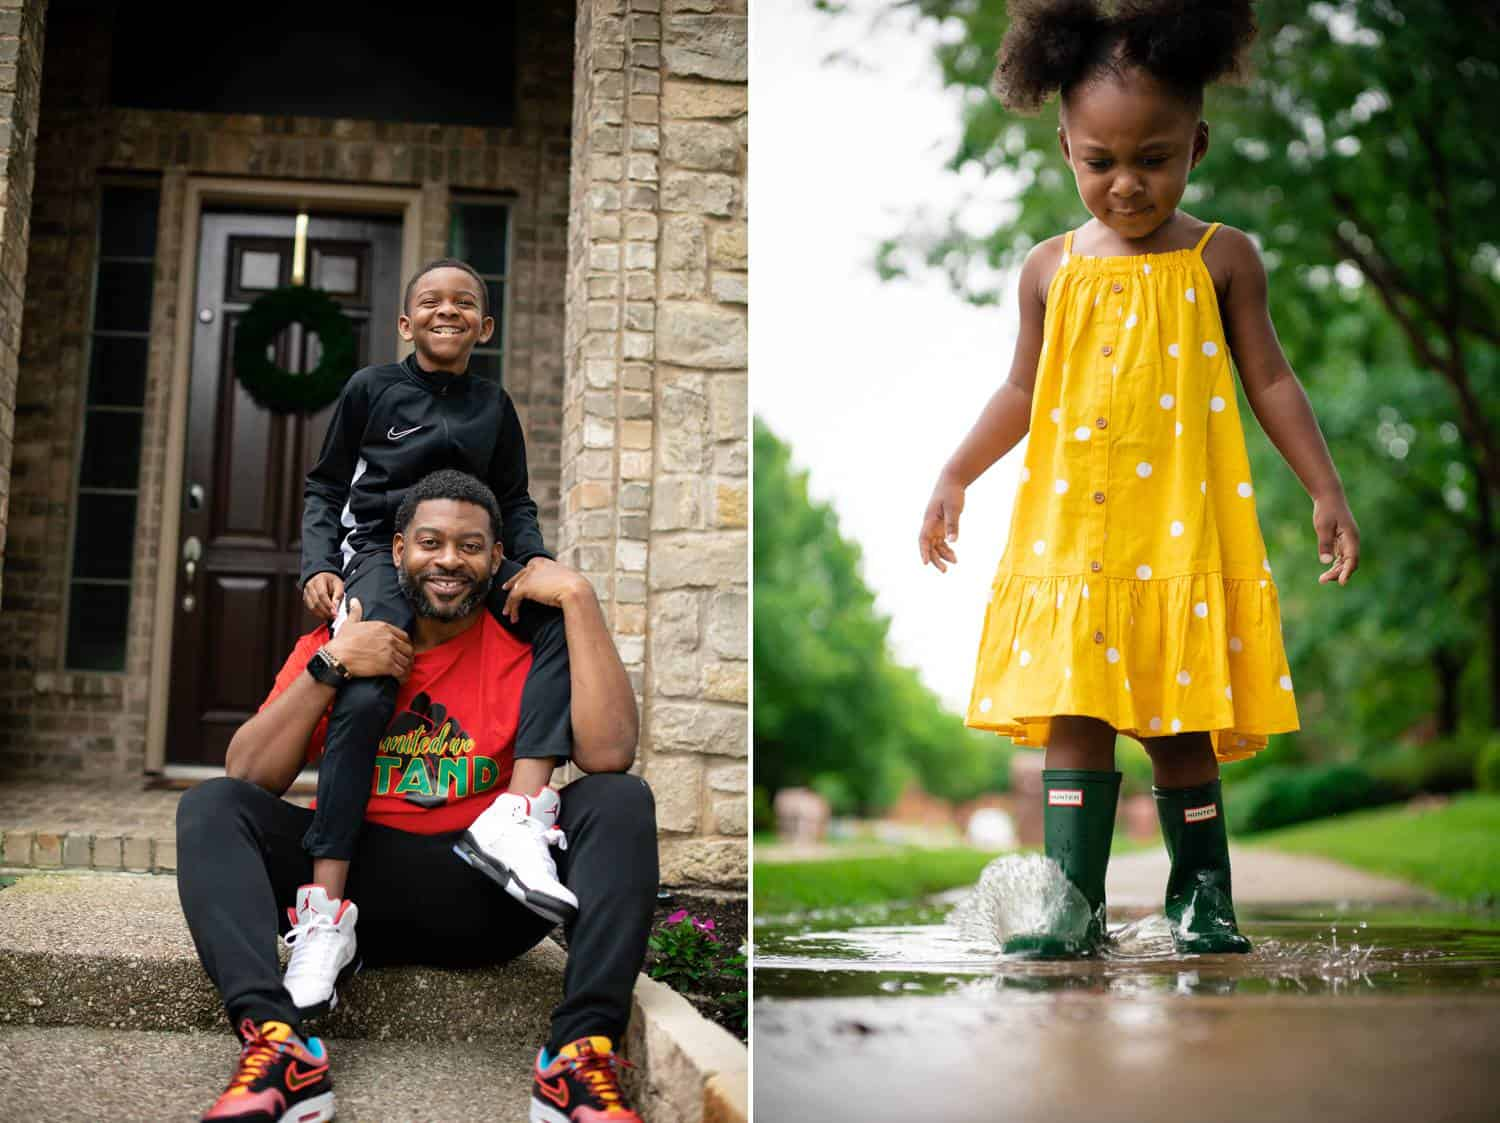 Two side-by-side photos show the daily interactions of a Black family. On the left, a little boy in a navy blue shirt sits on his dad's shoulders. The dad is seated on the front steps of the family's brick home. On the right, a little girl in a bright yellow dress splashes through a puddle in her green Hunter boots.